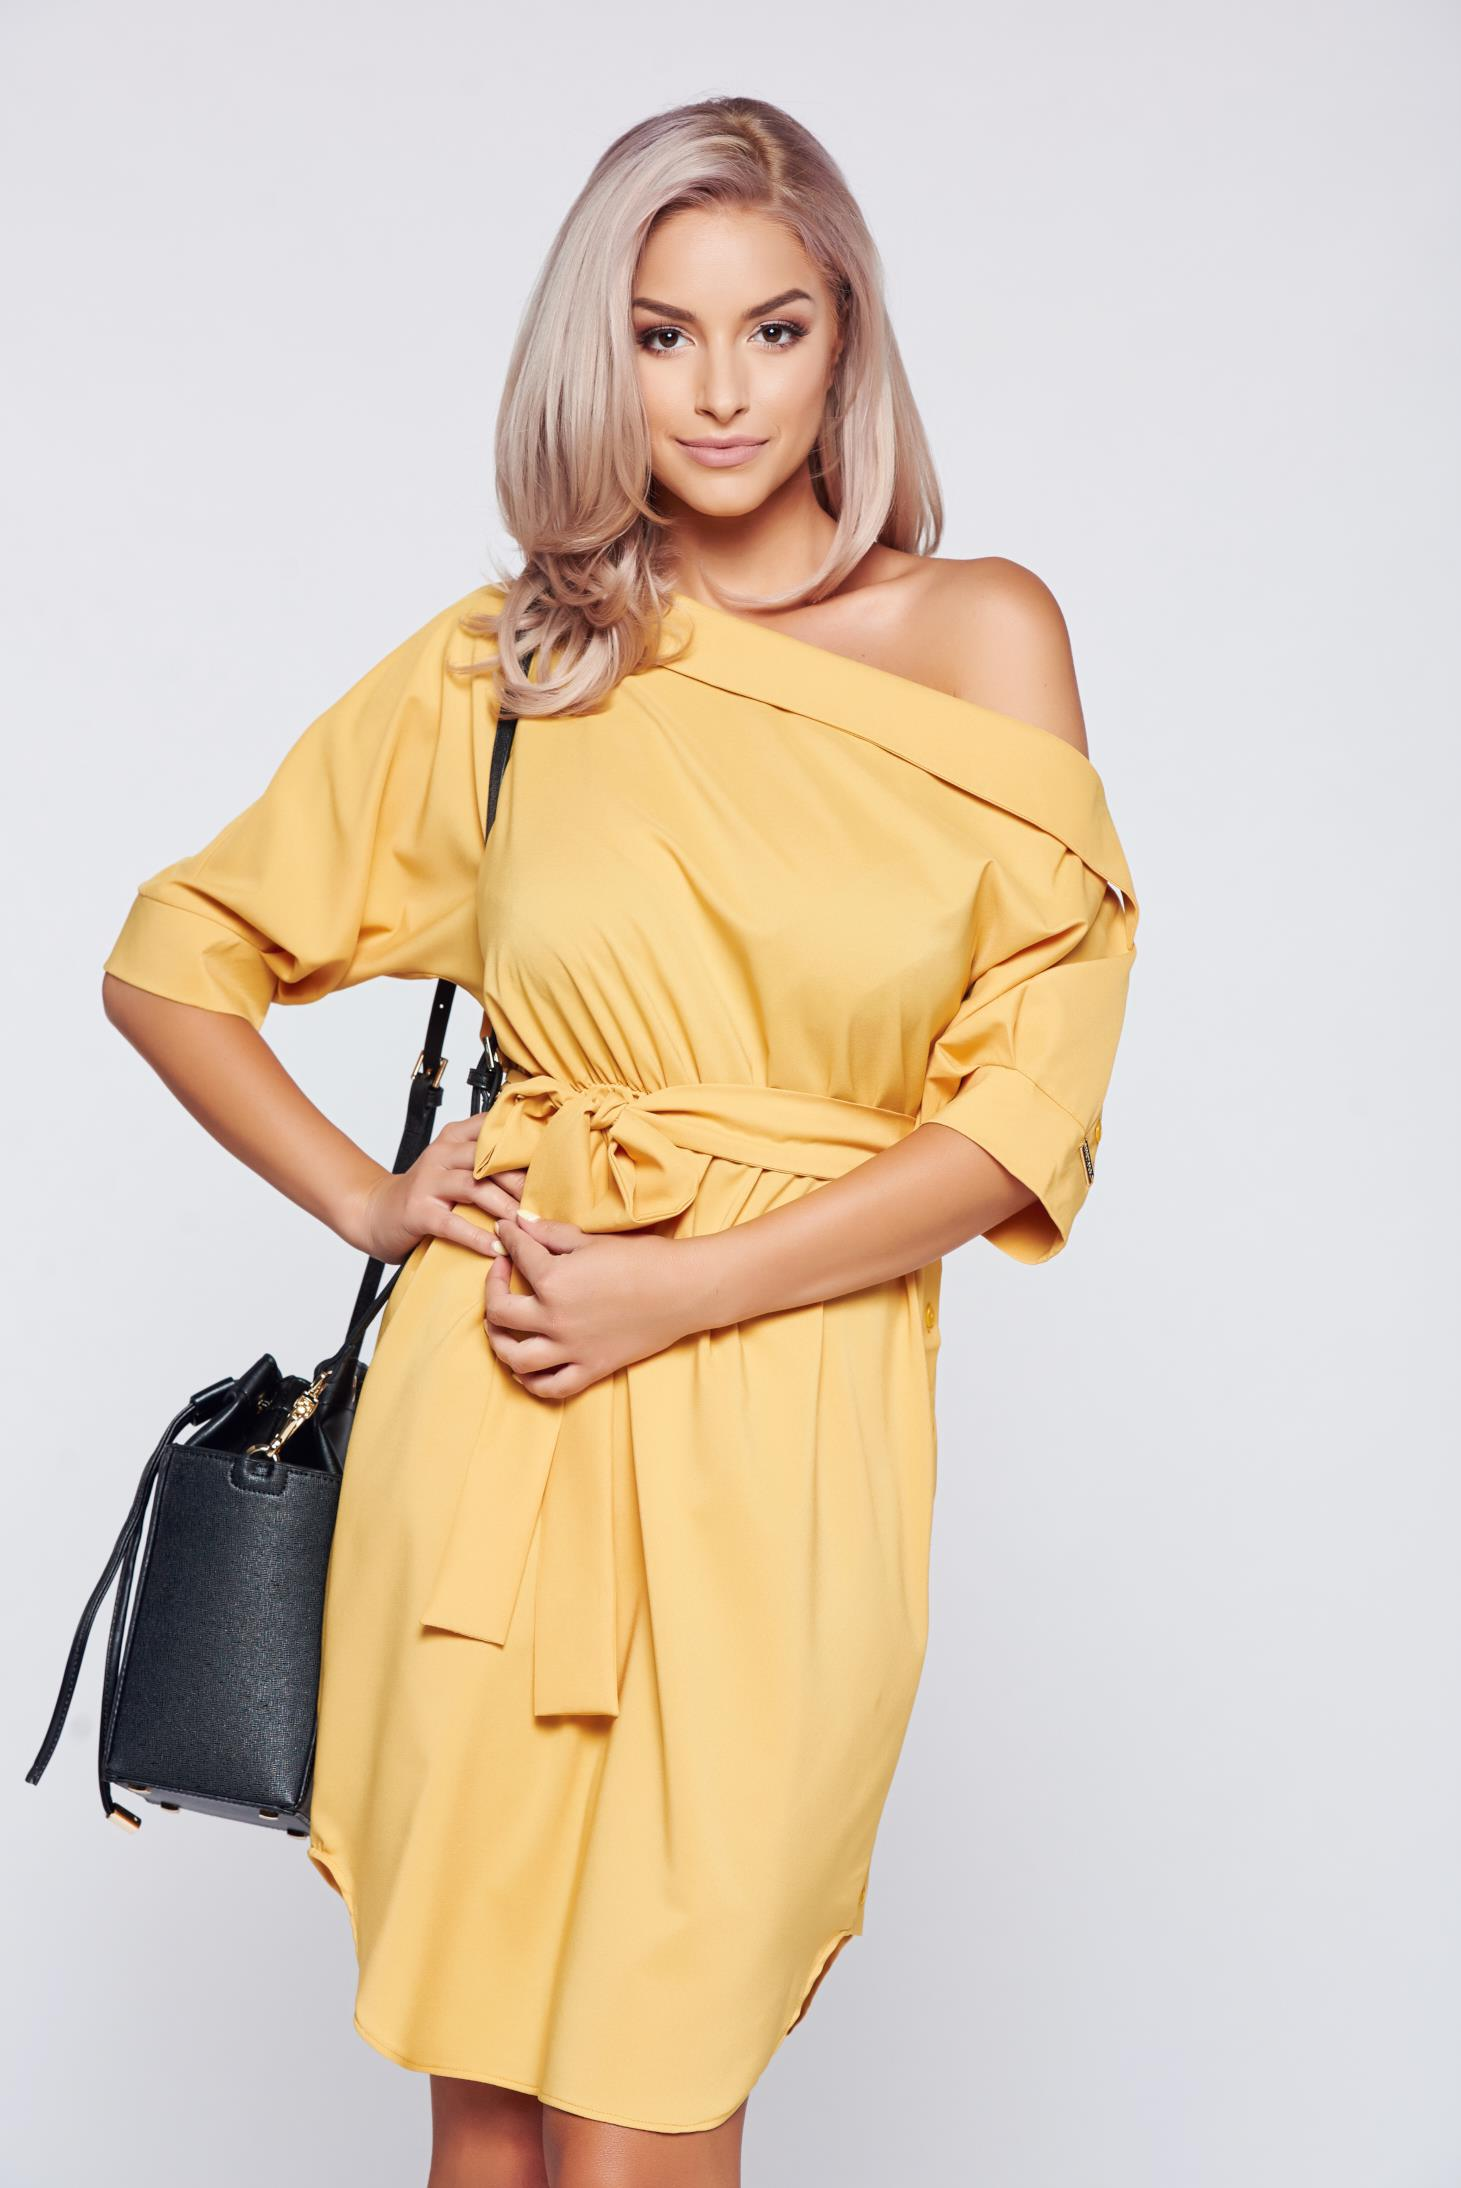 prettygirl-yellow-casual-flared-dress-accessorized-S030982-3-301901.jpg fe225ae9d